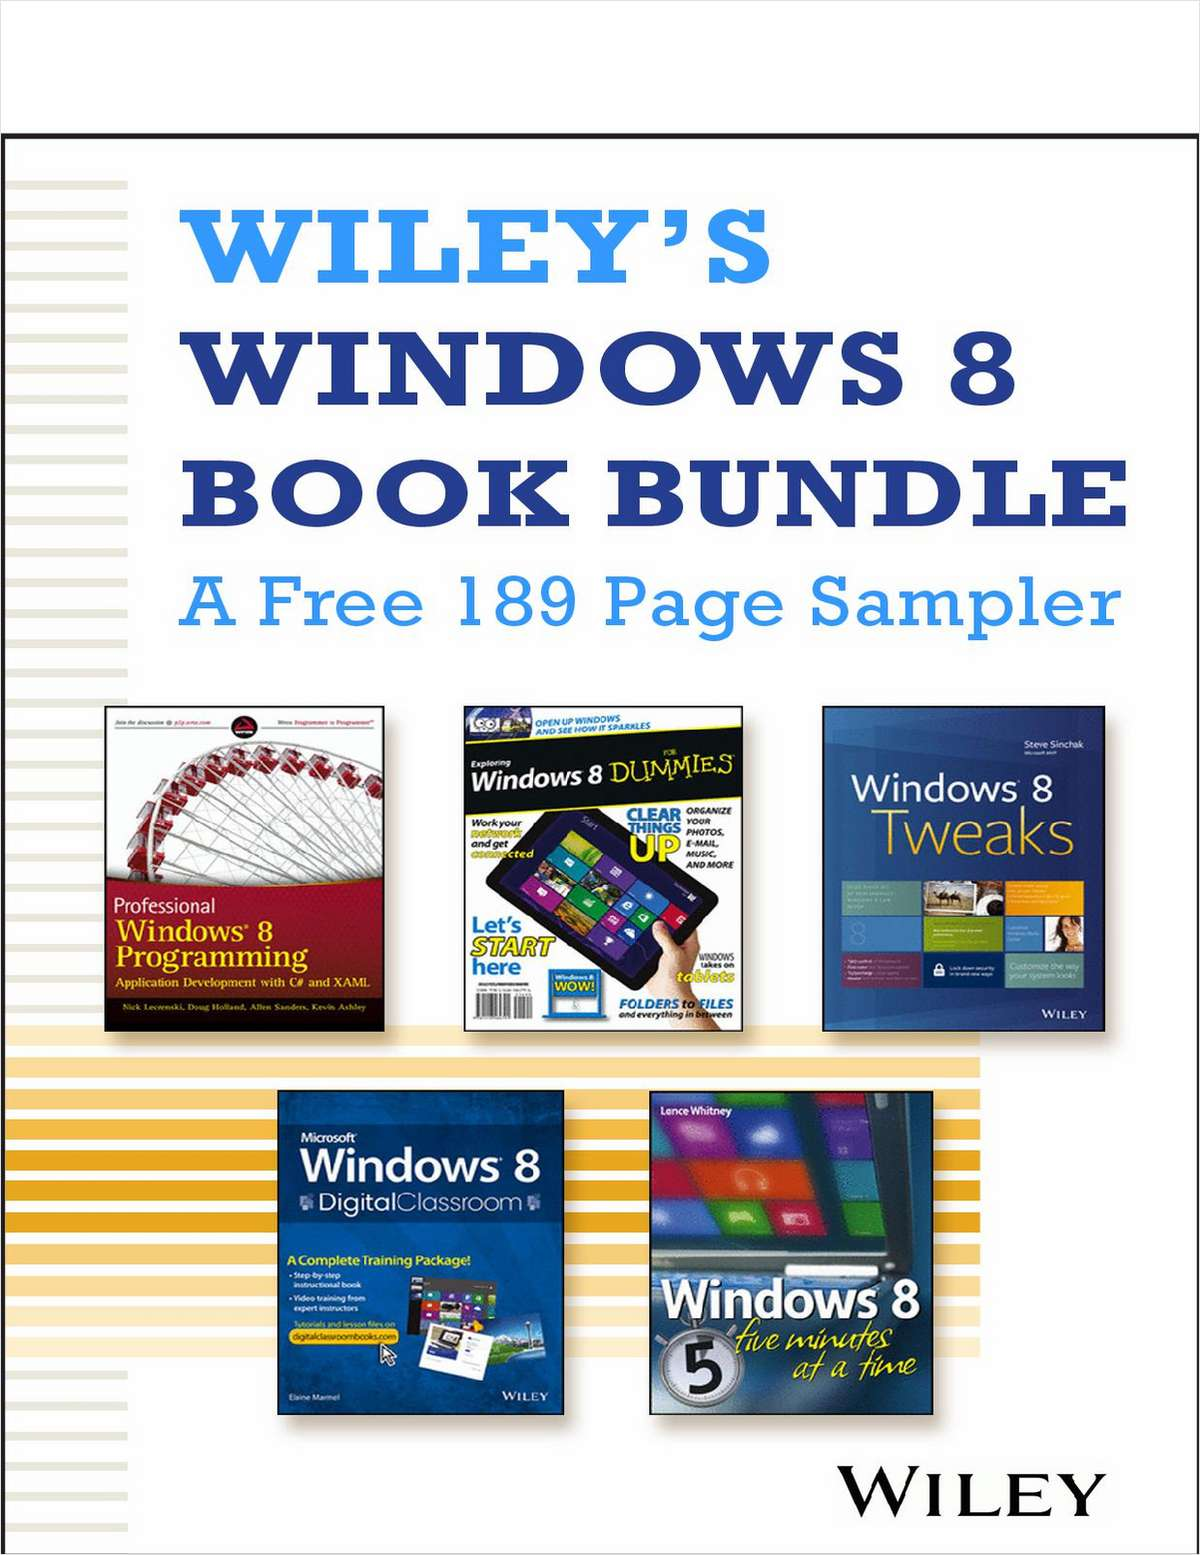 Wiley's Windows 8 Book Bundle -- A Free 189 Page Sampler